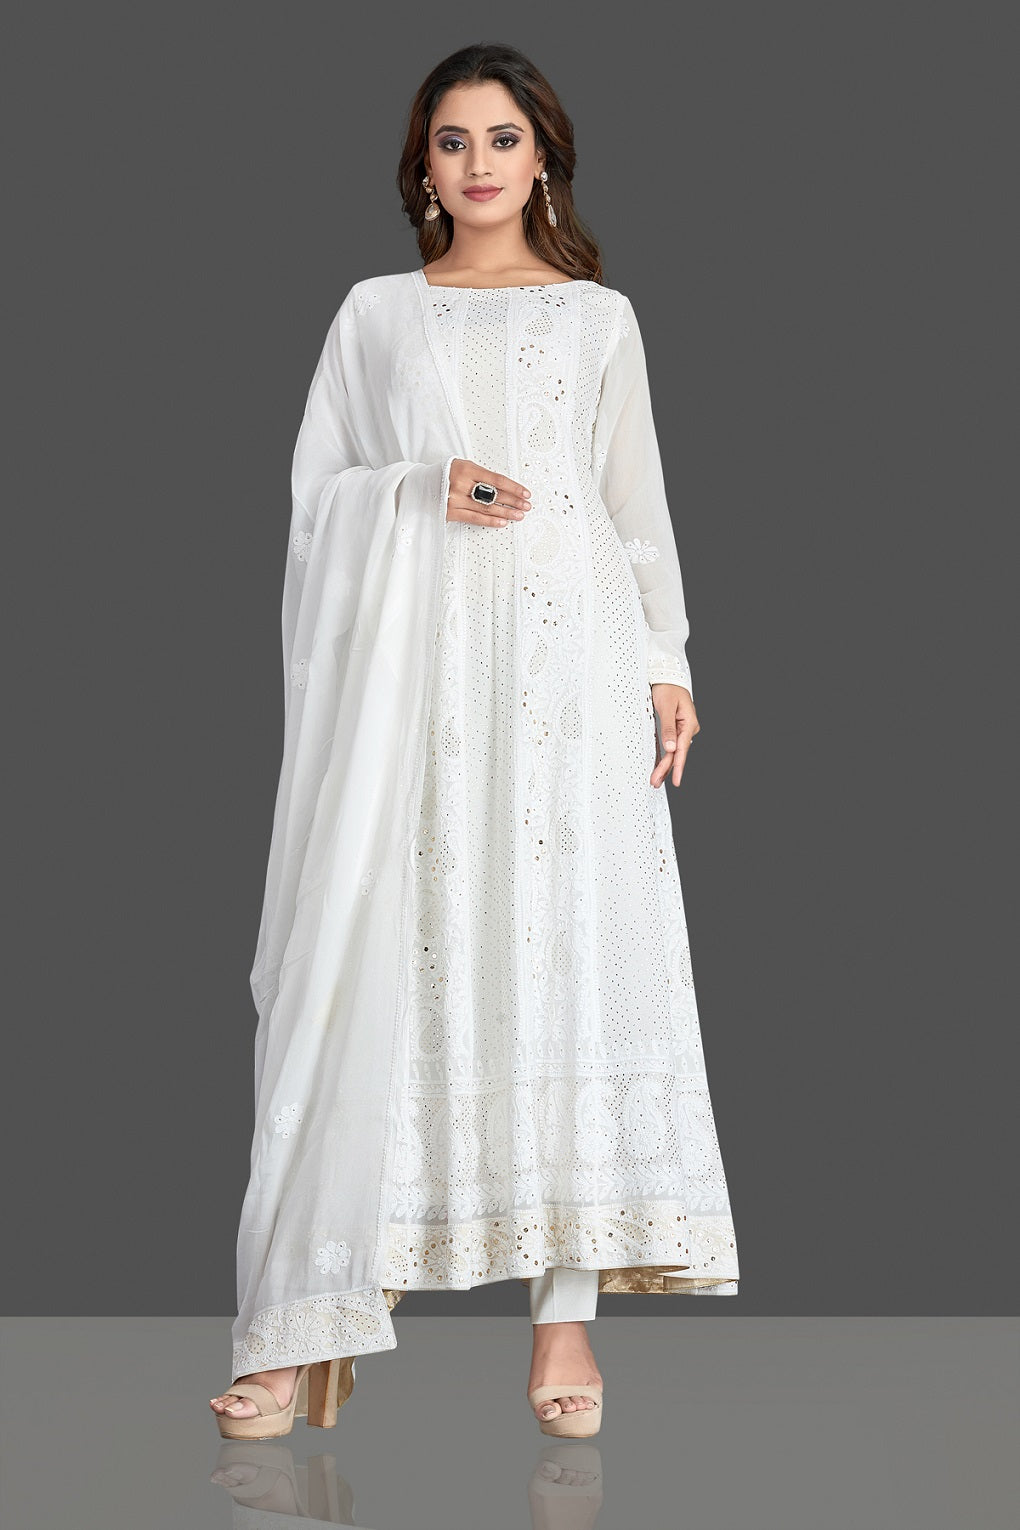 Buy stunning white georgette Lucknowi chikankari Anarkali suit online in USA. Flaunt your sartorial choice with beautiful embroidered Anarkali, sharara suits, designer lehengas, designer gowns from Pure Elegance Indian saree store in USA.-front